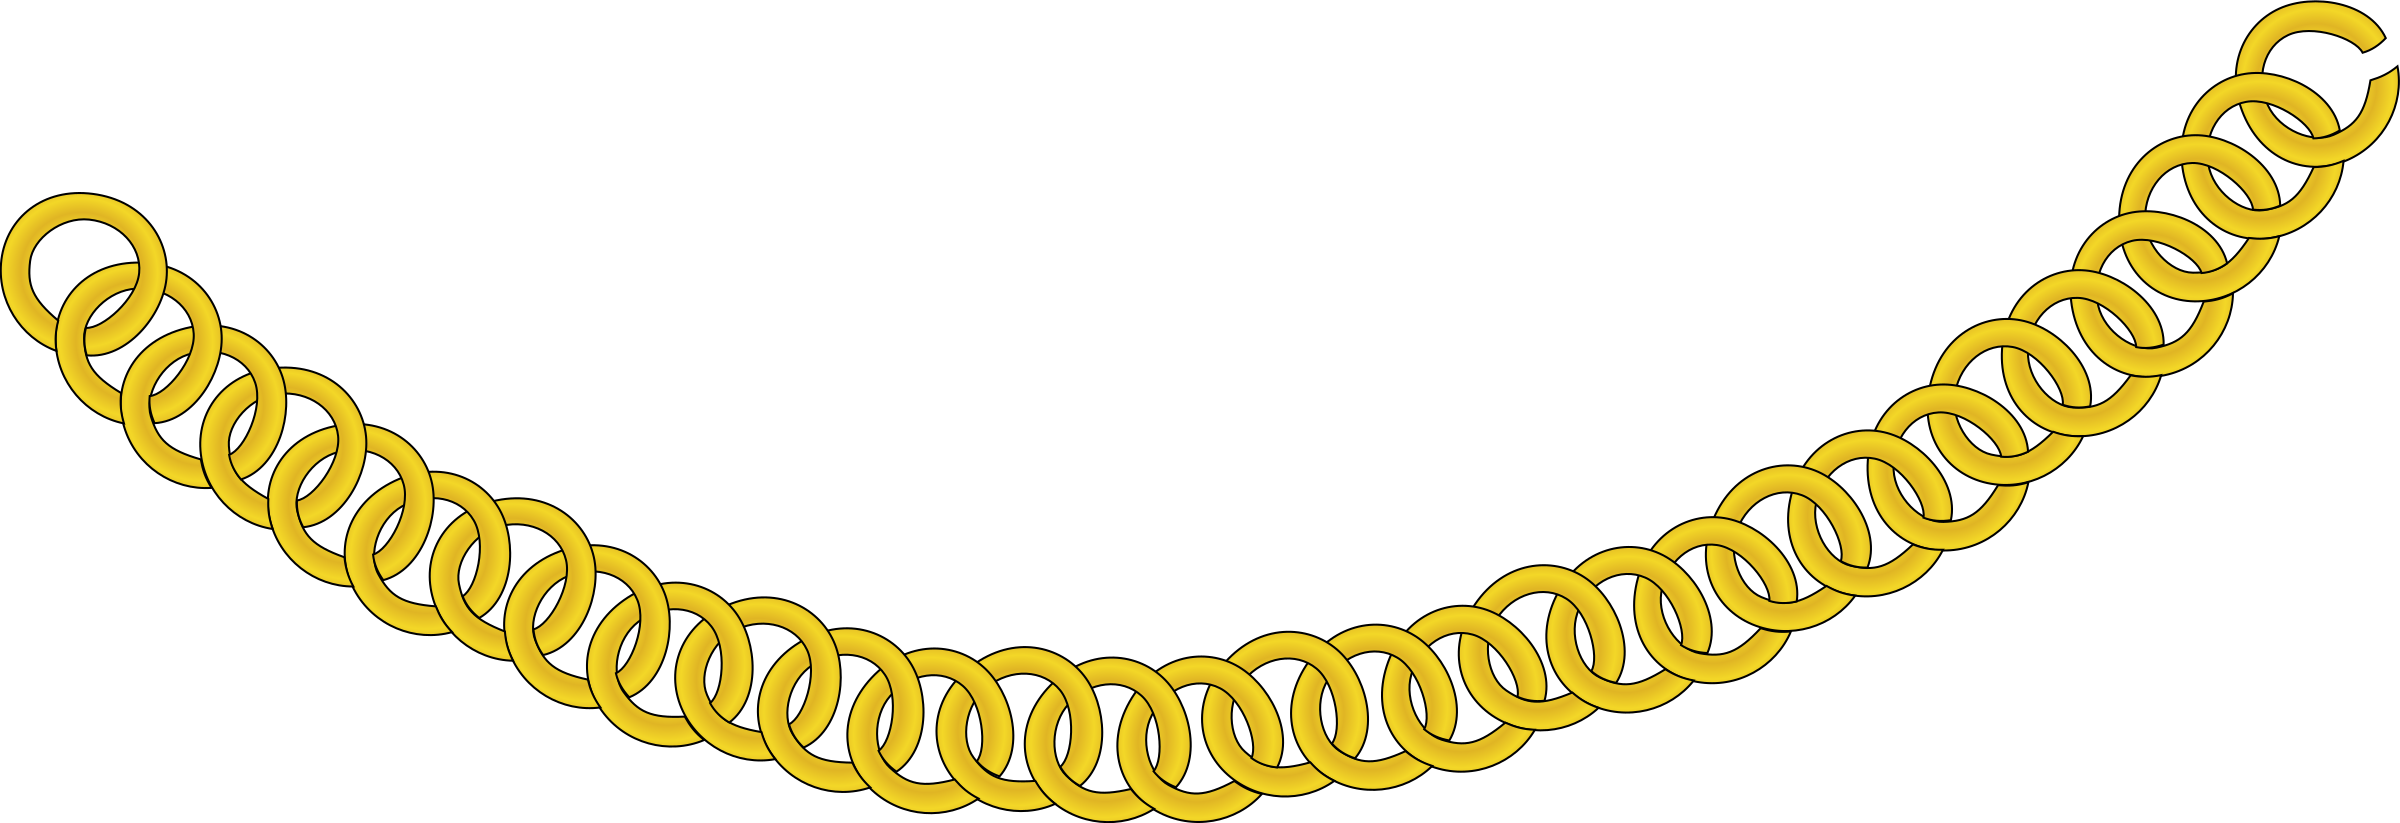 Choker drawing chain. Gold icons png free